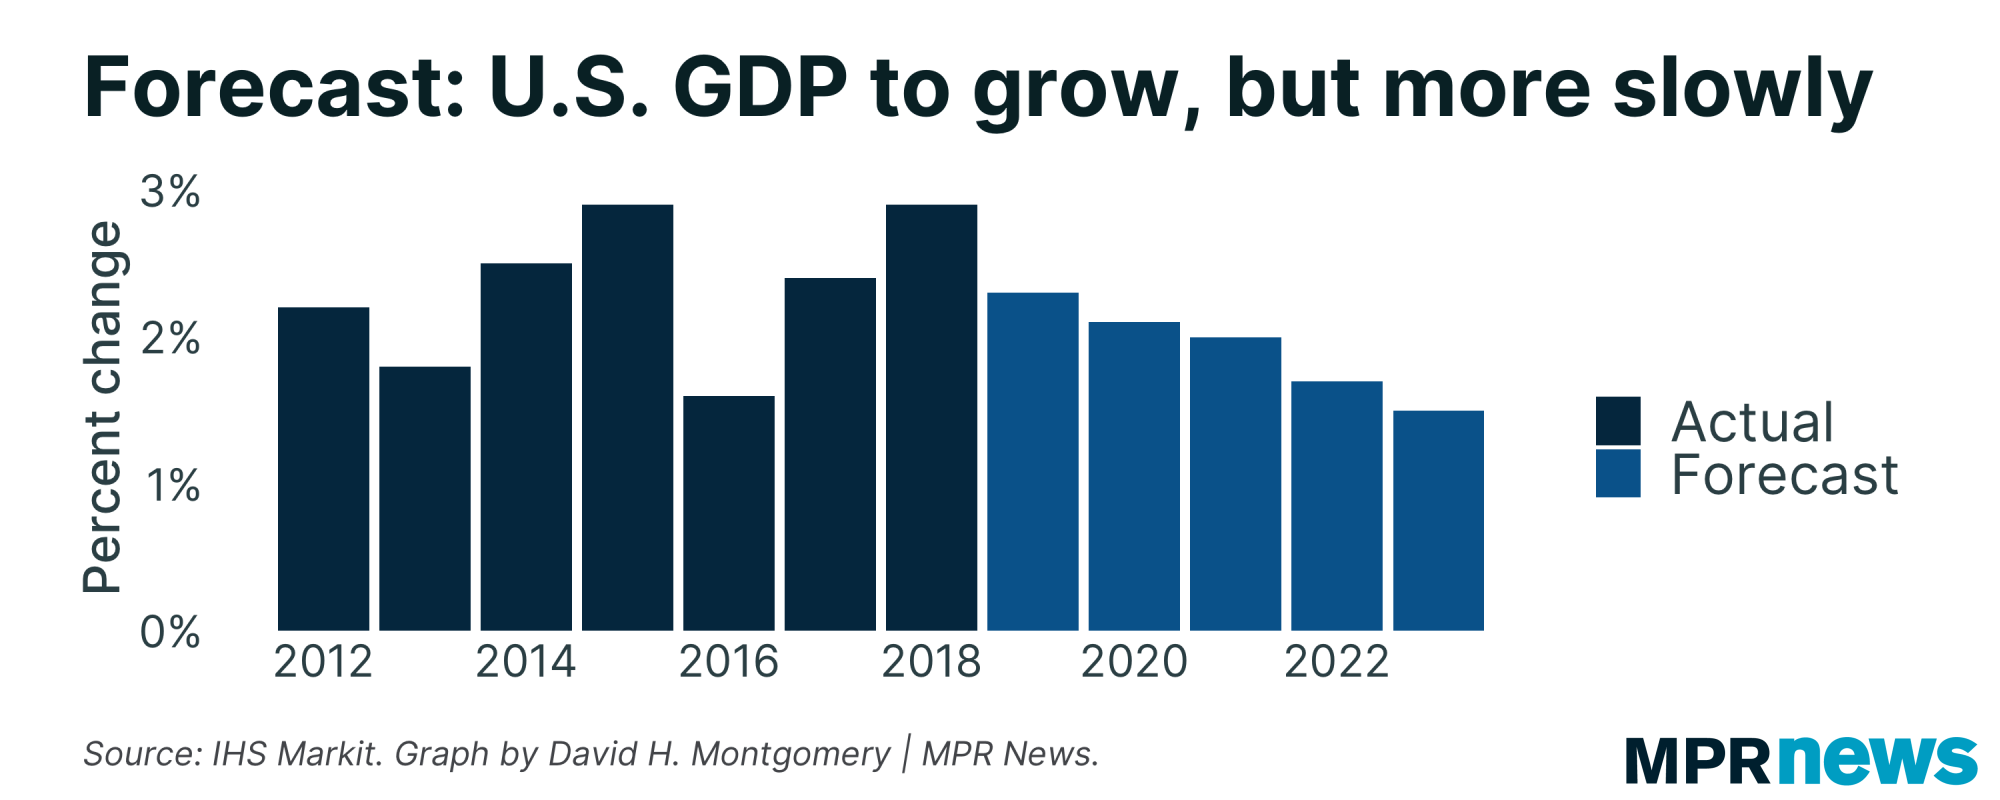 A graphic showing projected changes in the U.S. GDP